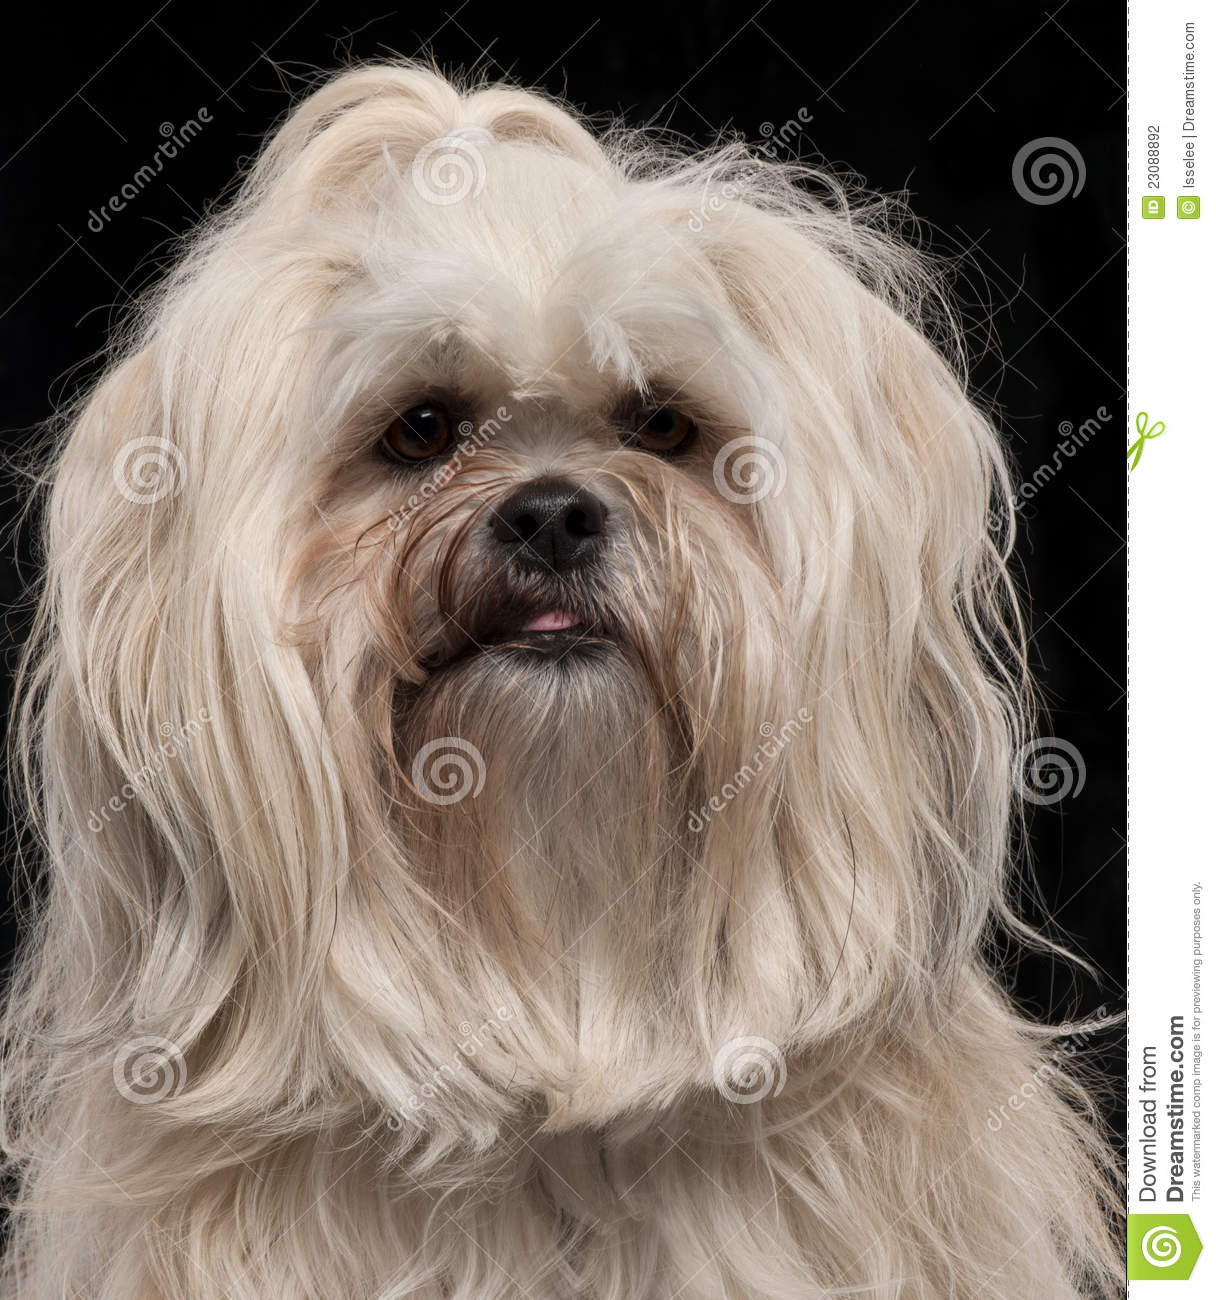 Lhasa Apso 2 Years Old Close-up of Lhasa Apso  2 and